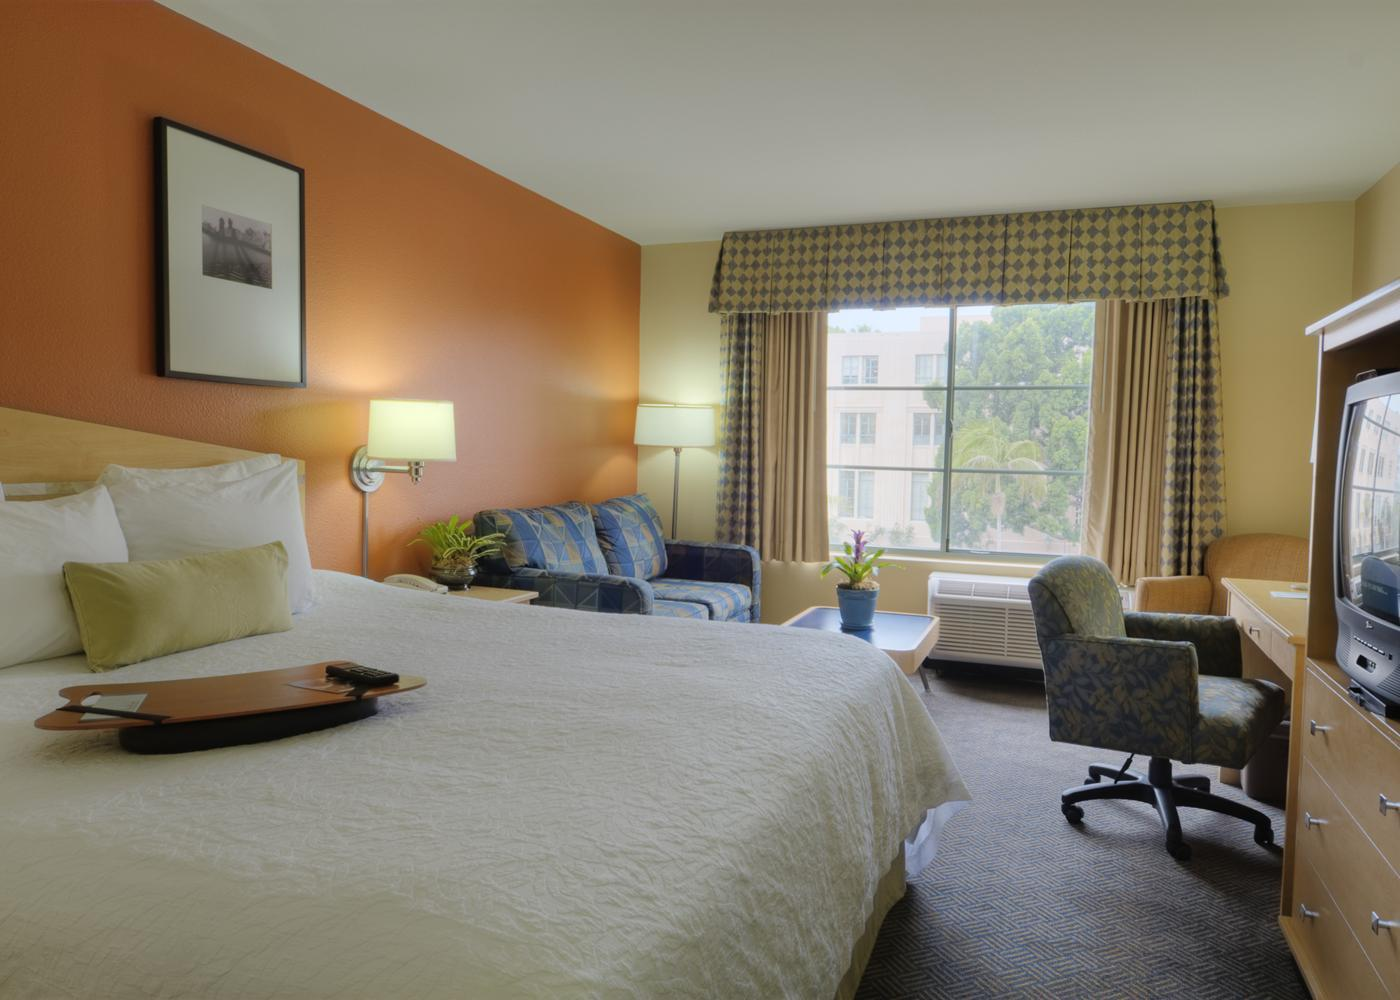 2 Bedroom Suites San Diego Ca Hotels With 2 Bedroom Suites In San Diego Hotels With 2